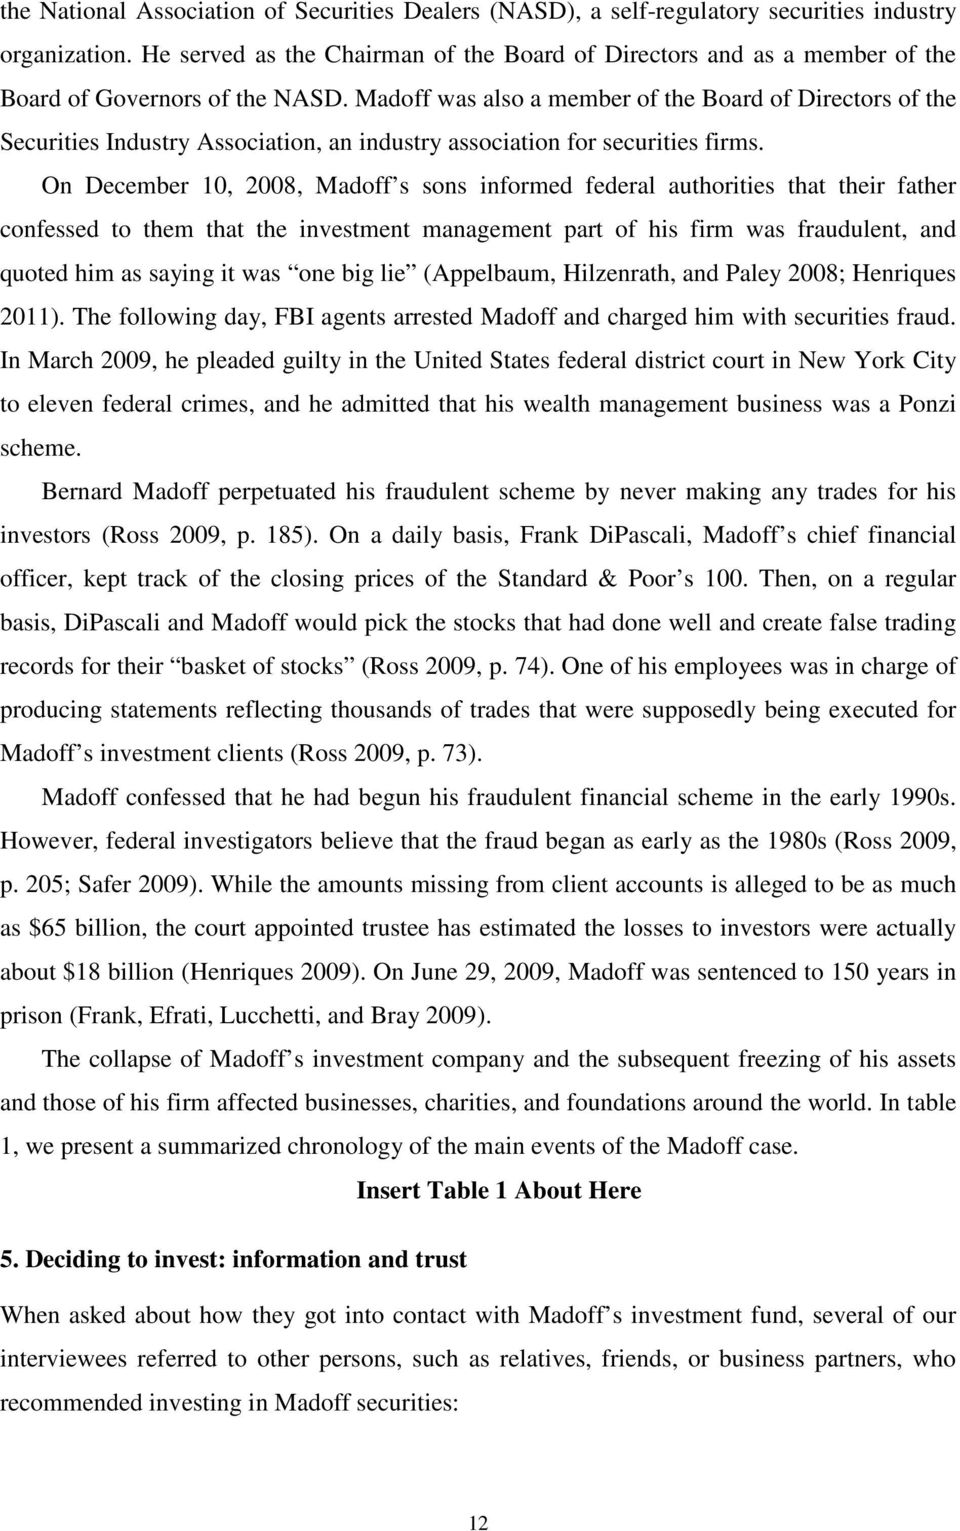 Madoff was also a member of the Board of Directors of the Securities Industry Association, an industry association for securities firms.